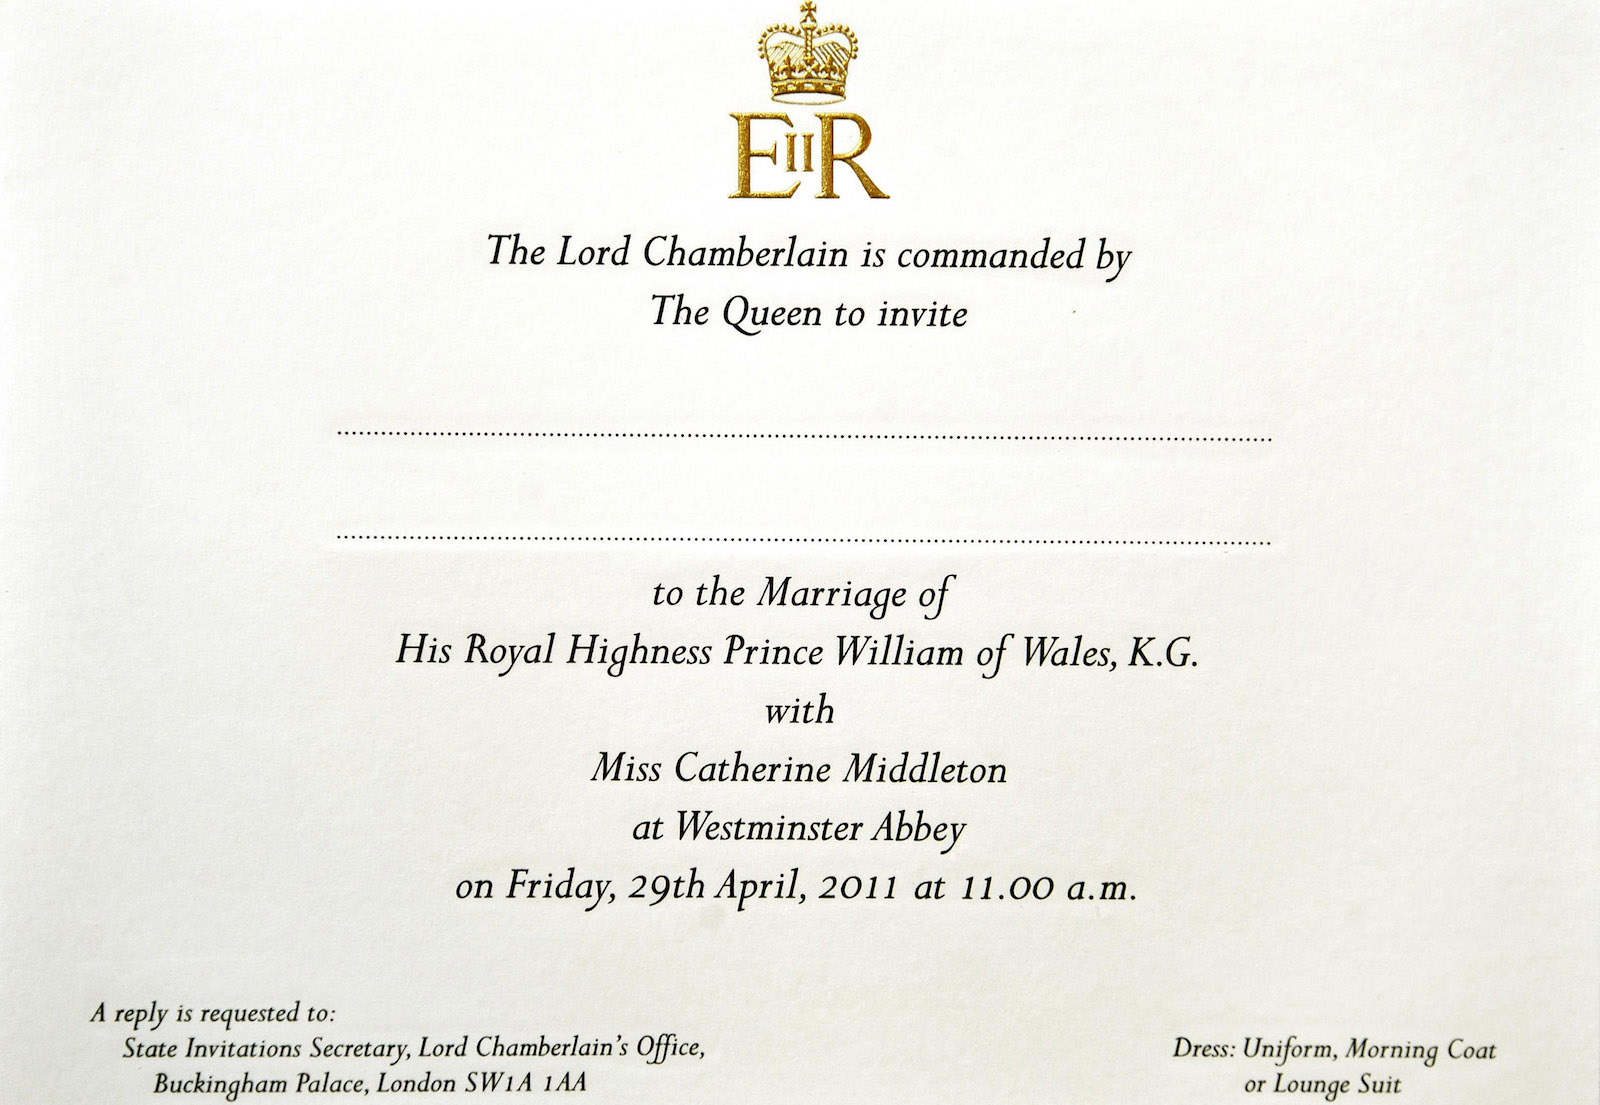 Kate Middleton and Prince William's wedding invitation